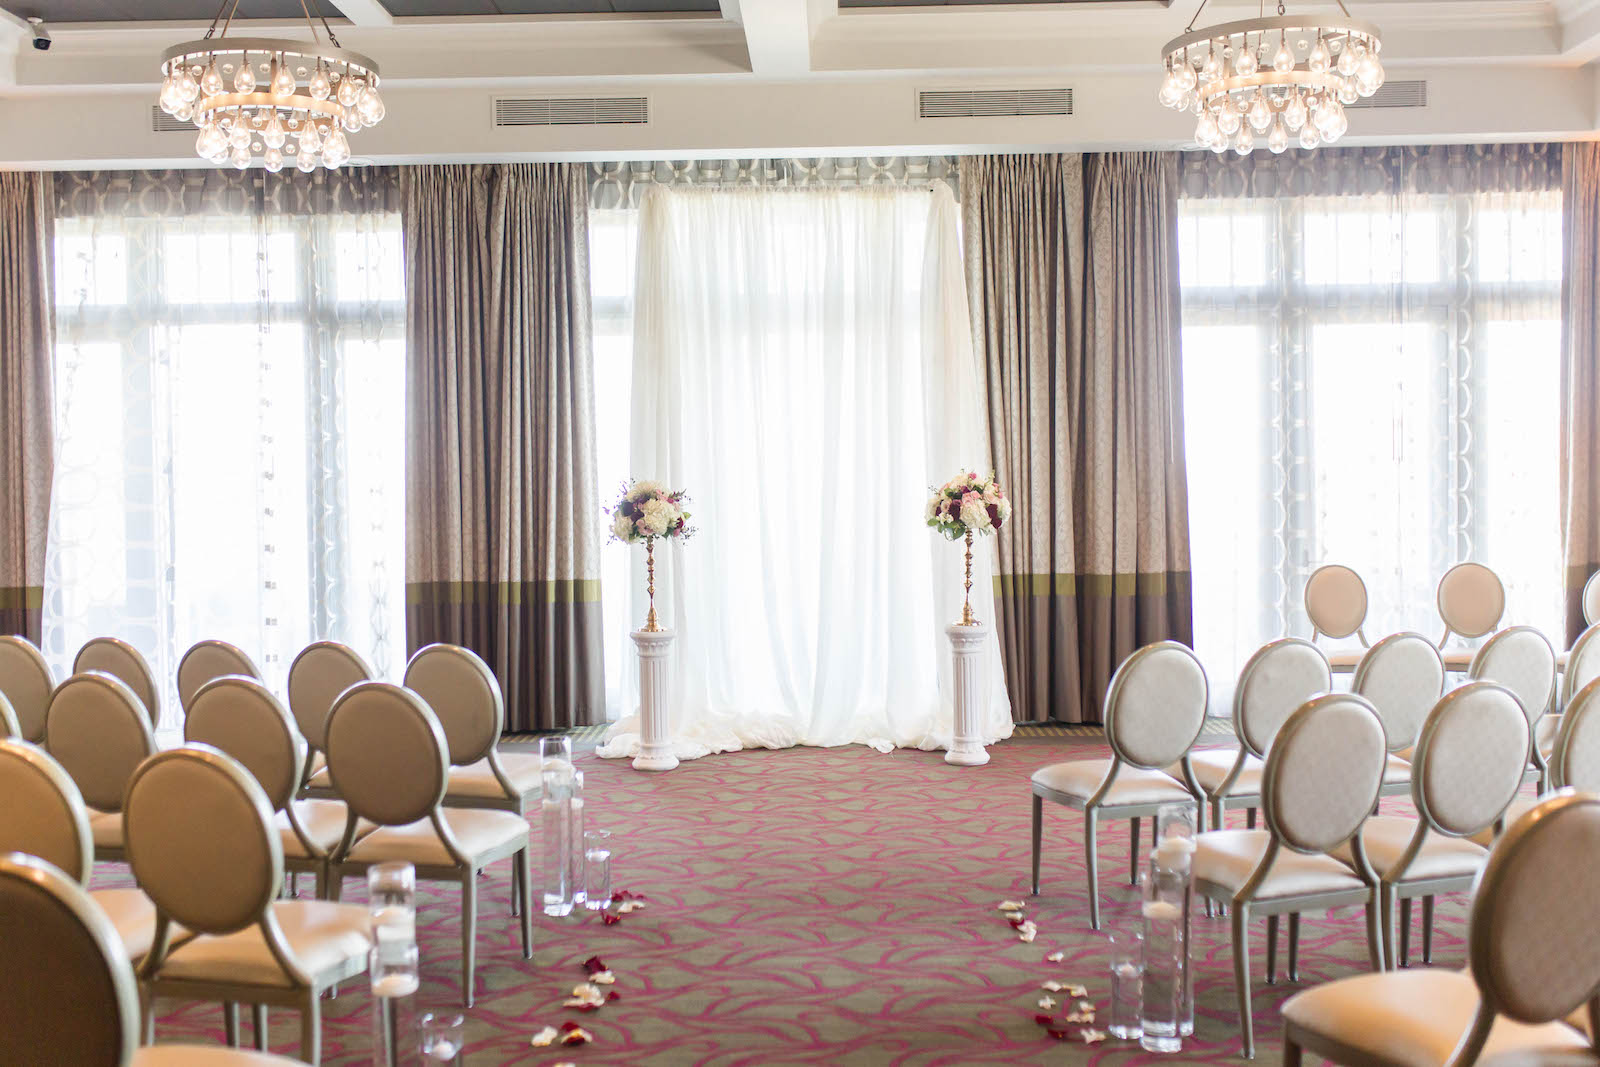 St. Pete Wedding Venue The Birchwood   Indoor Ballroom Wedding Ceremony with Floral Candlestick and Pipe and Drape Backdrop and Floating Candles down the Aisle